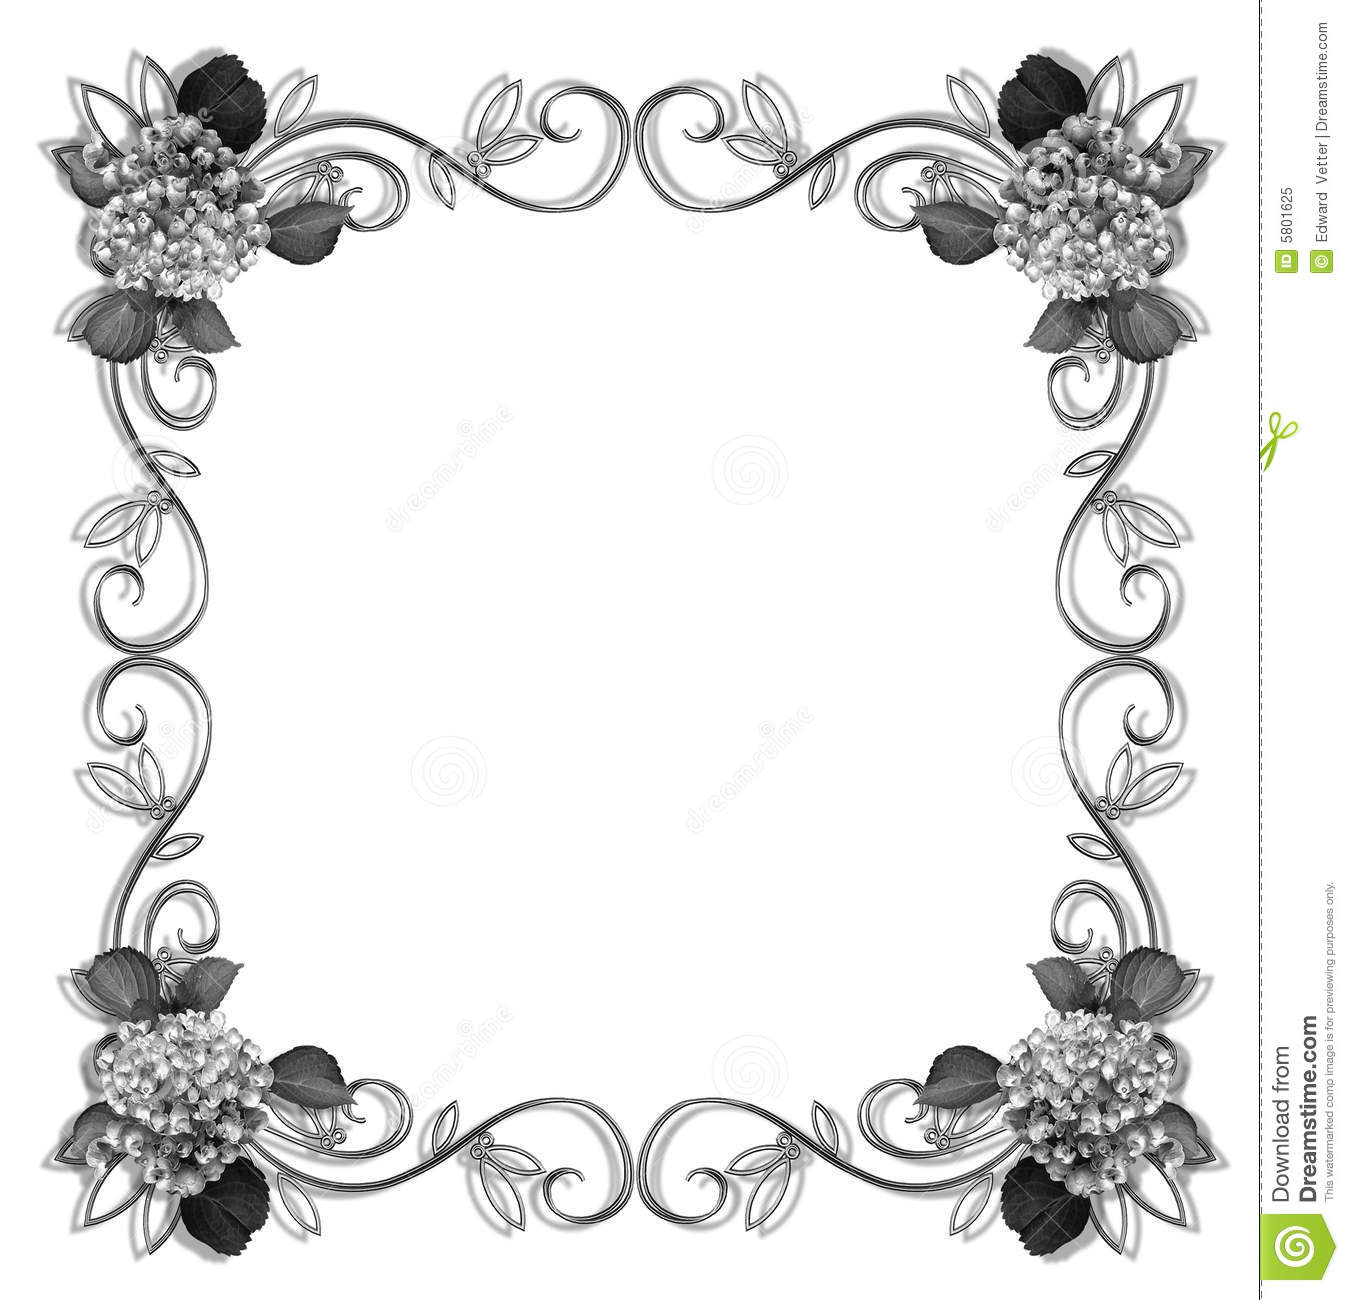 18 Black And White Flower Border Designs Images Black